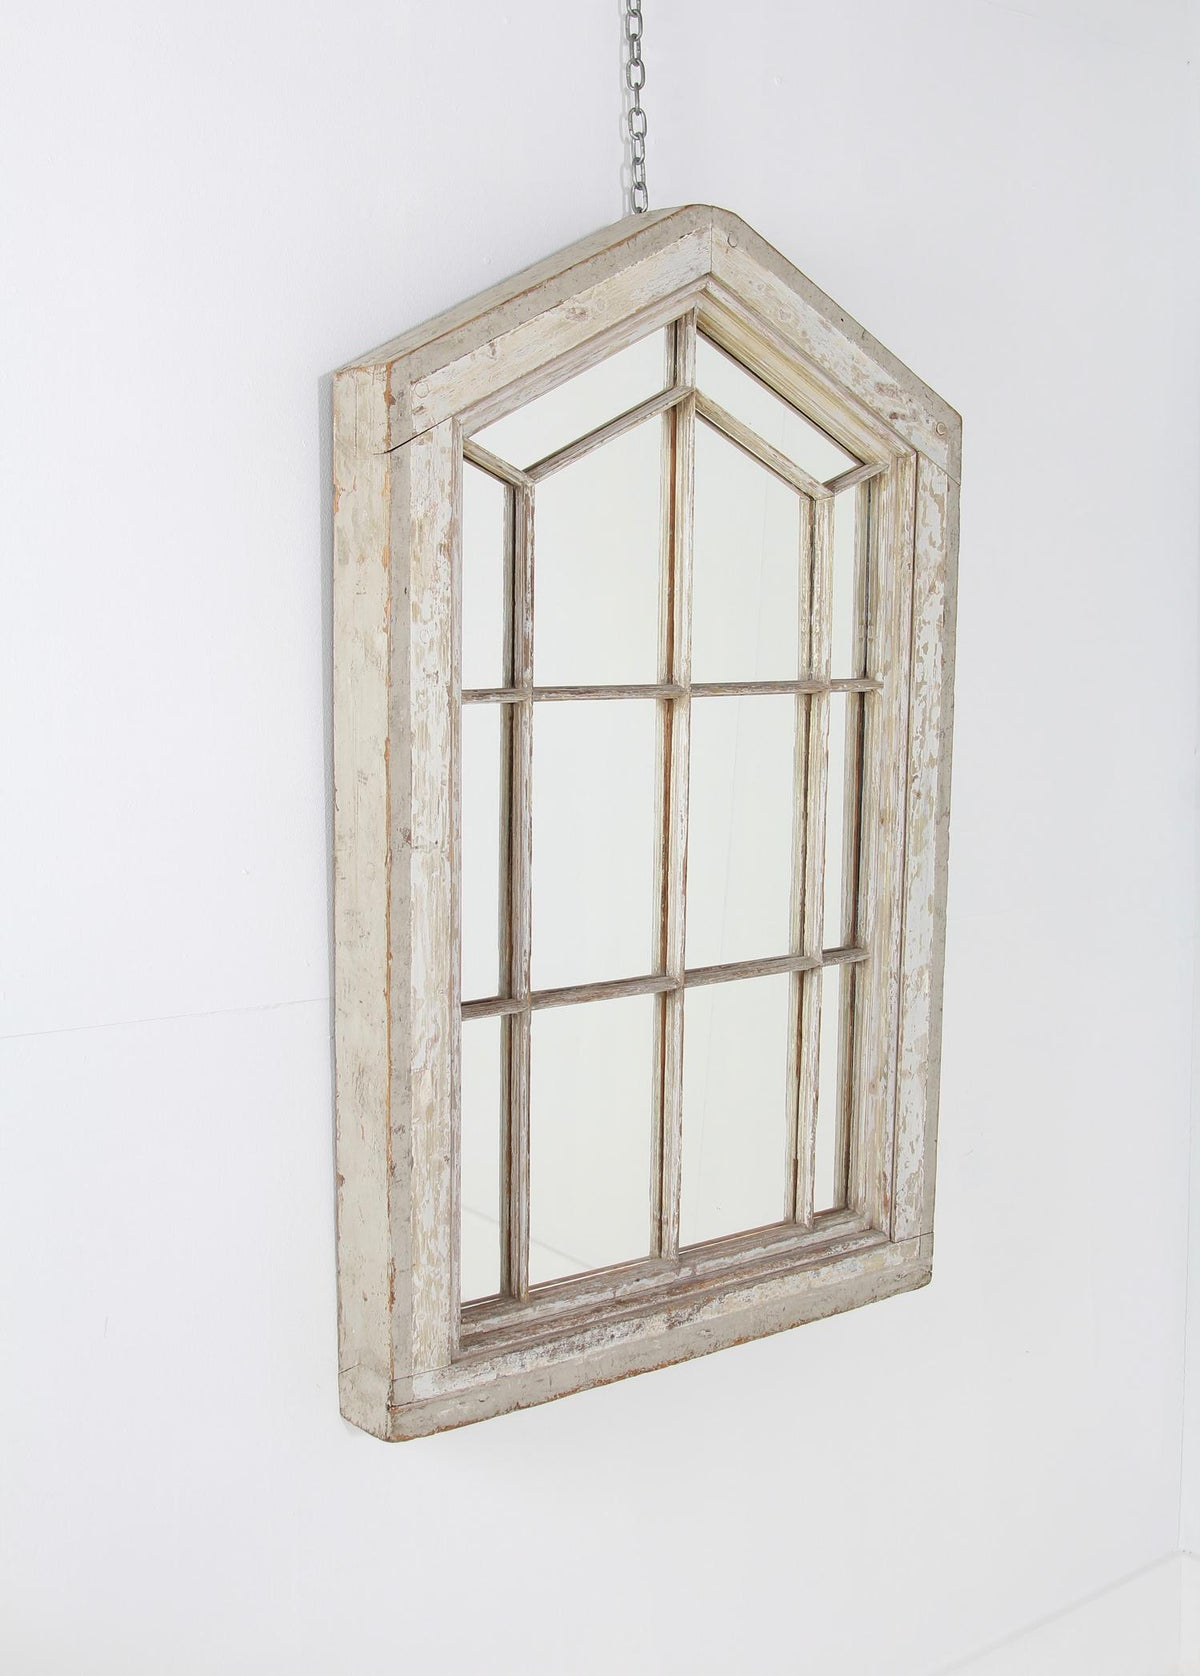 Impressive Architectural  Wooden Window  Mirror